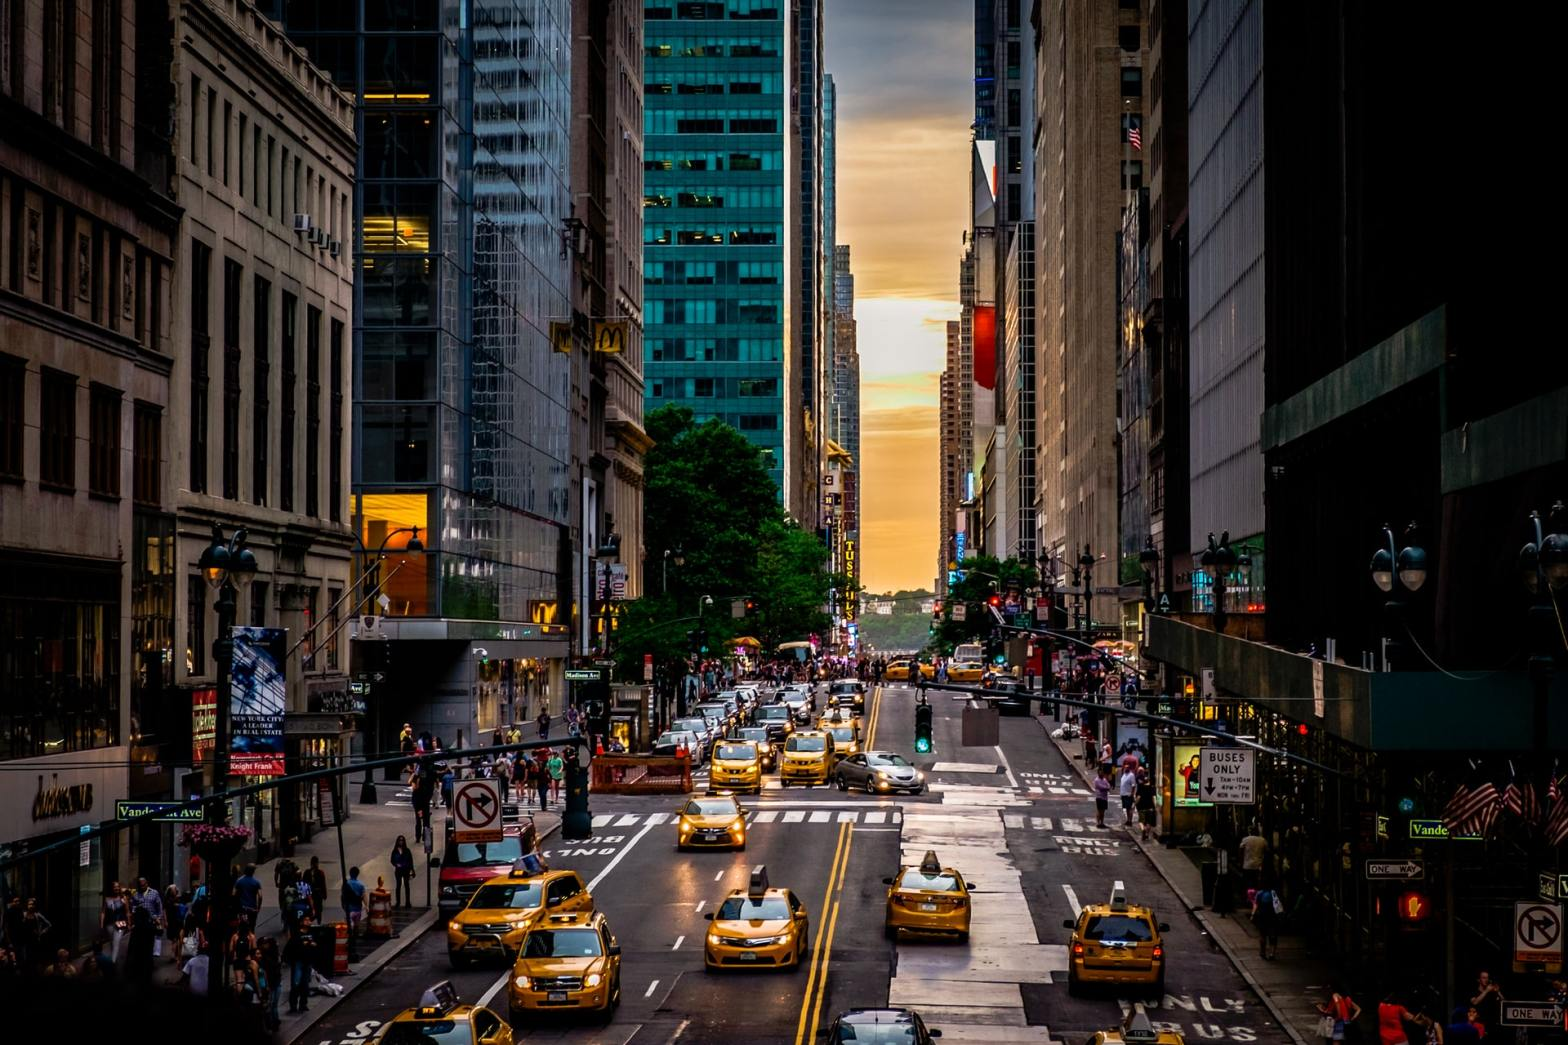 Numerous Yellow Taxi cabs and Uber cabs driving down a street in NYC